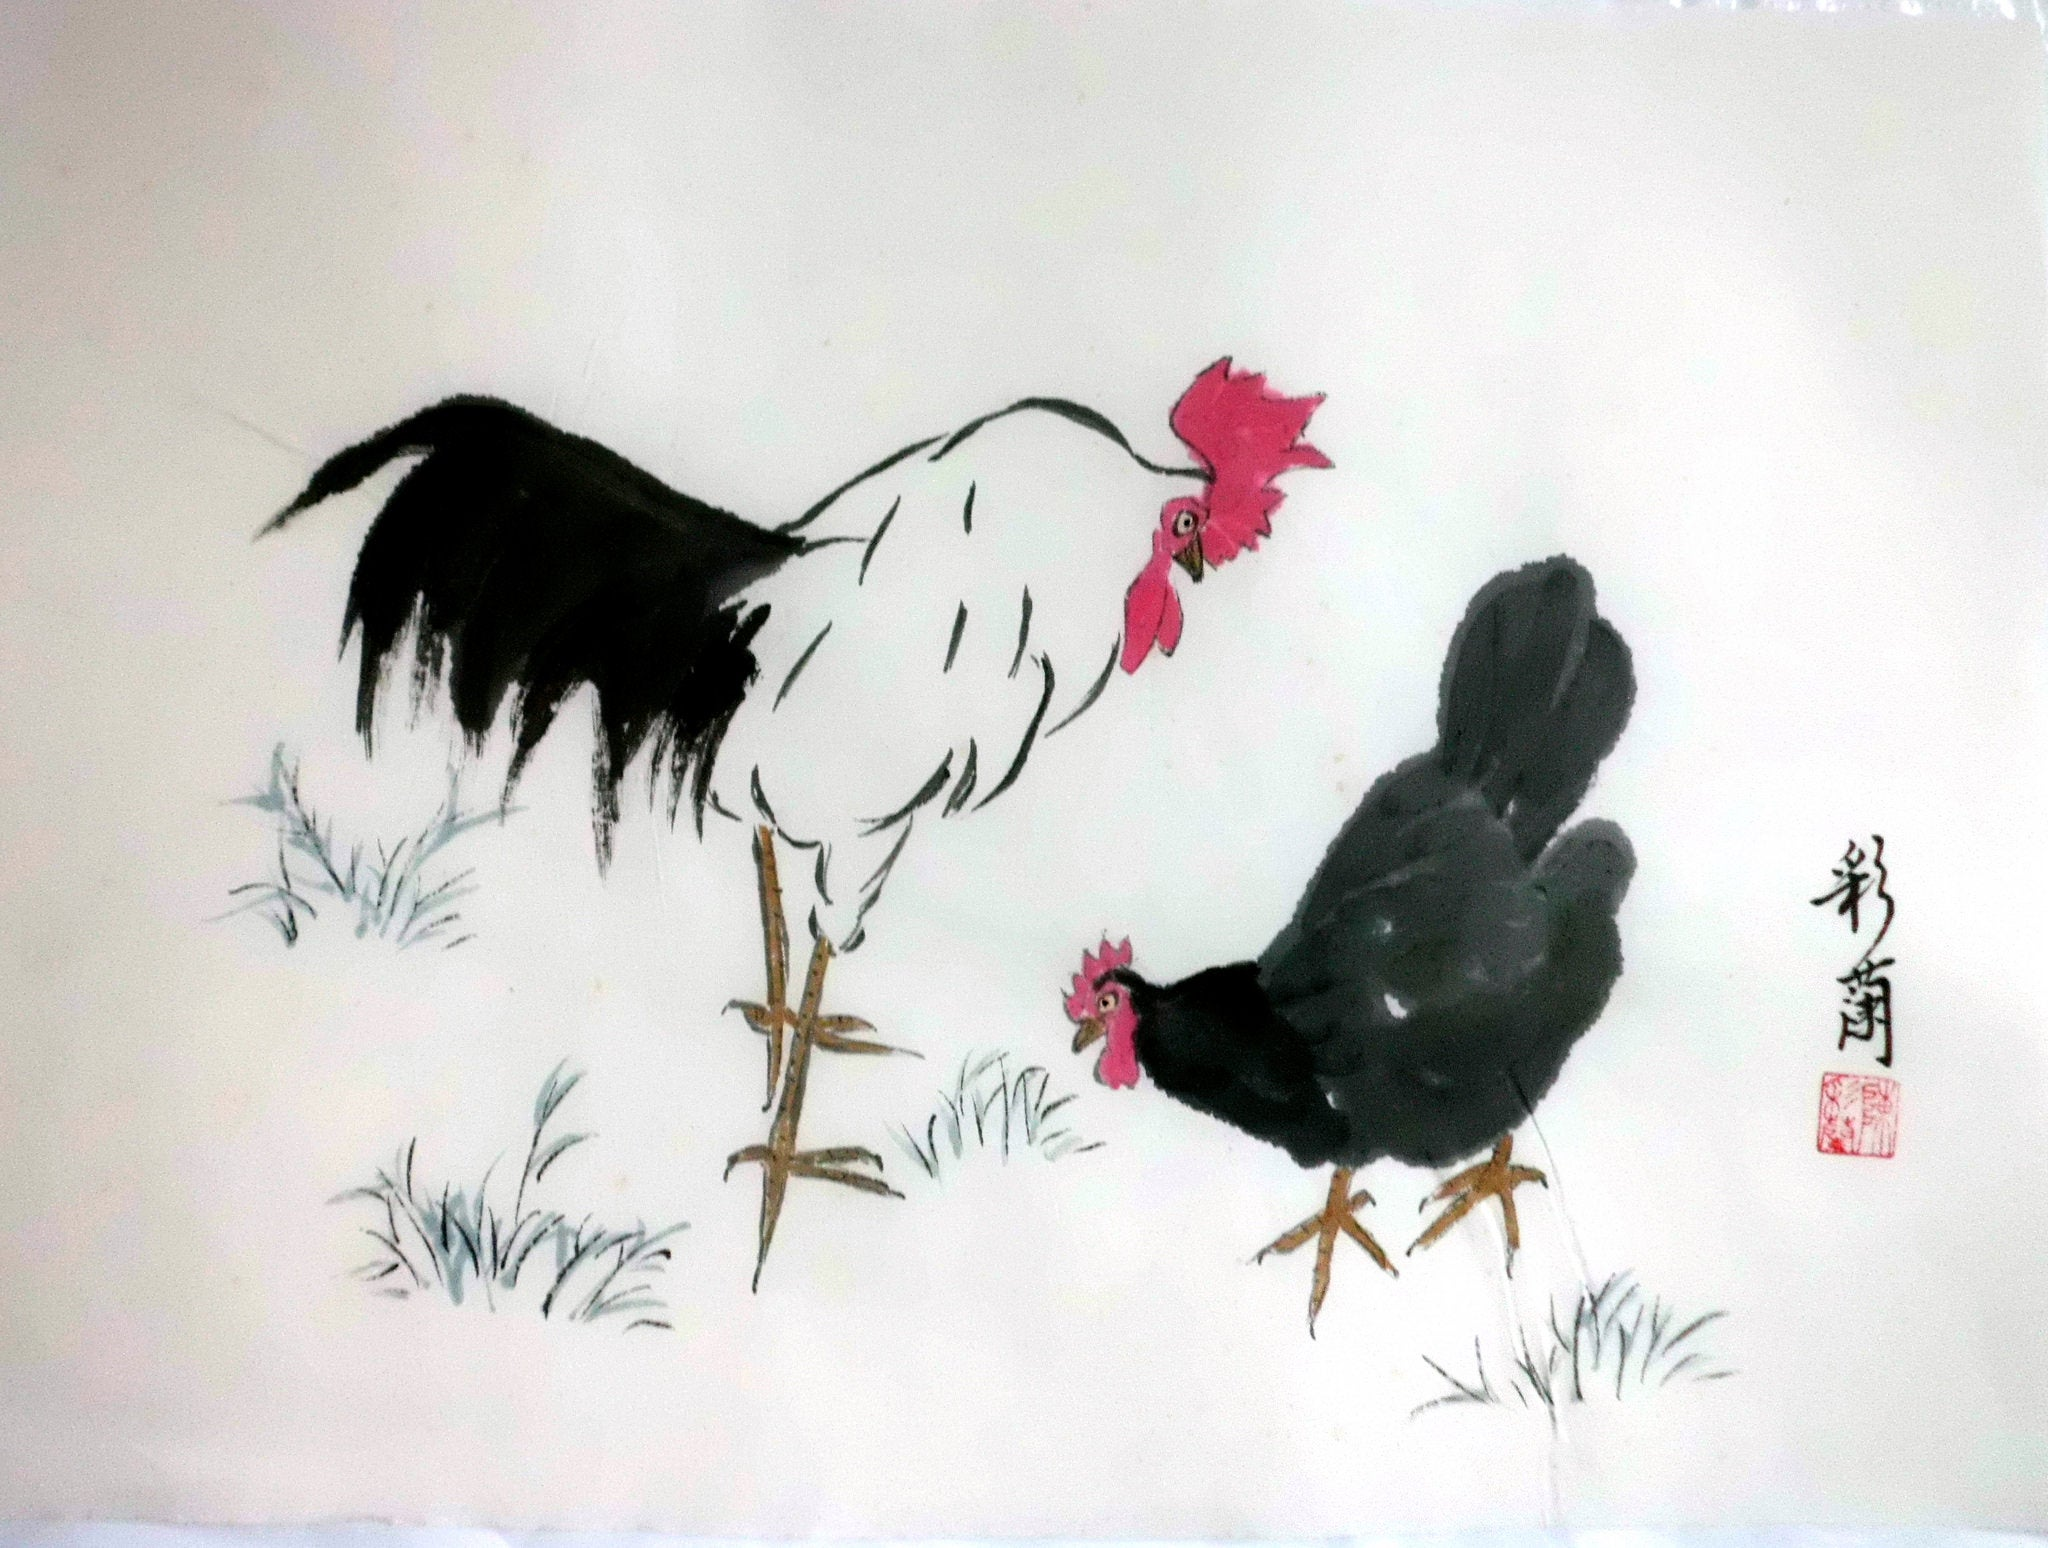 Celebrate Year of the Rooster with the best chicken science